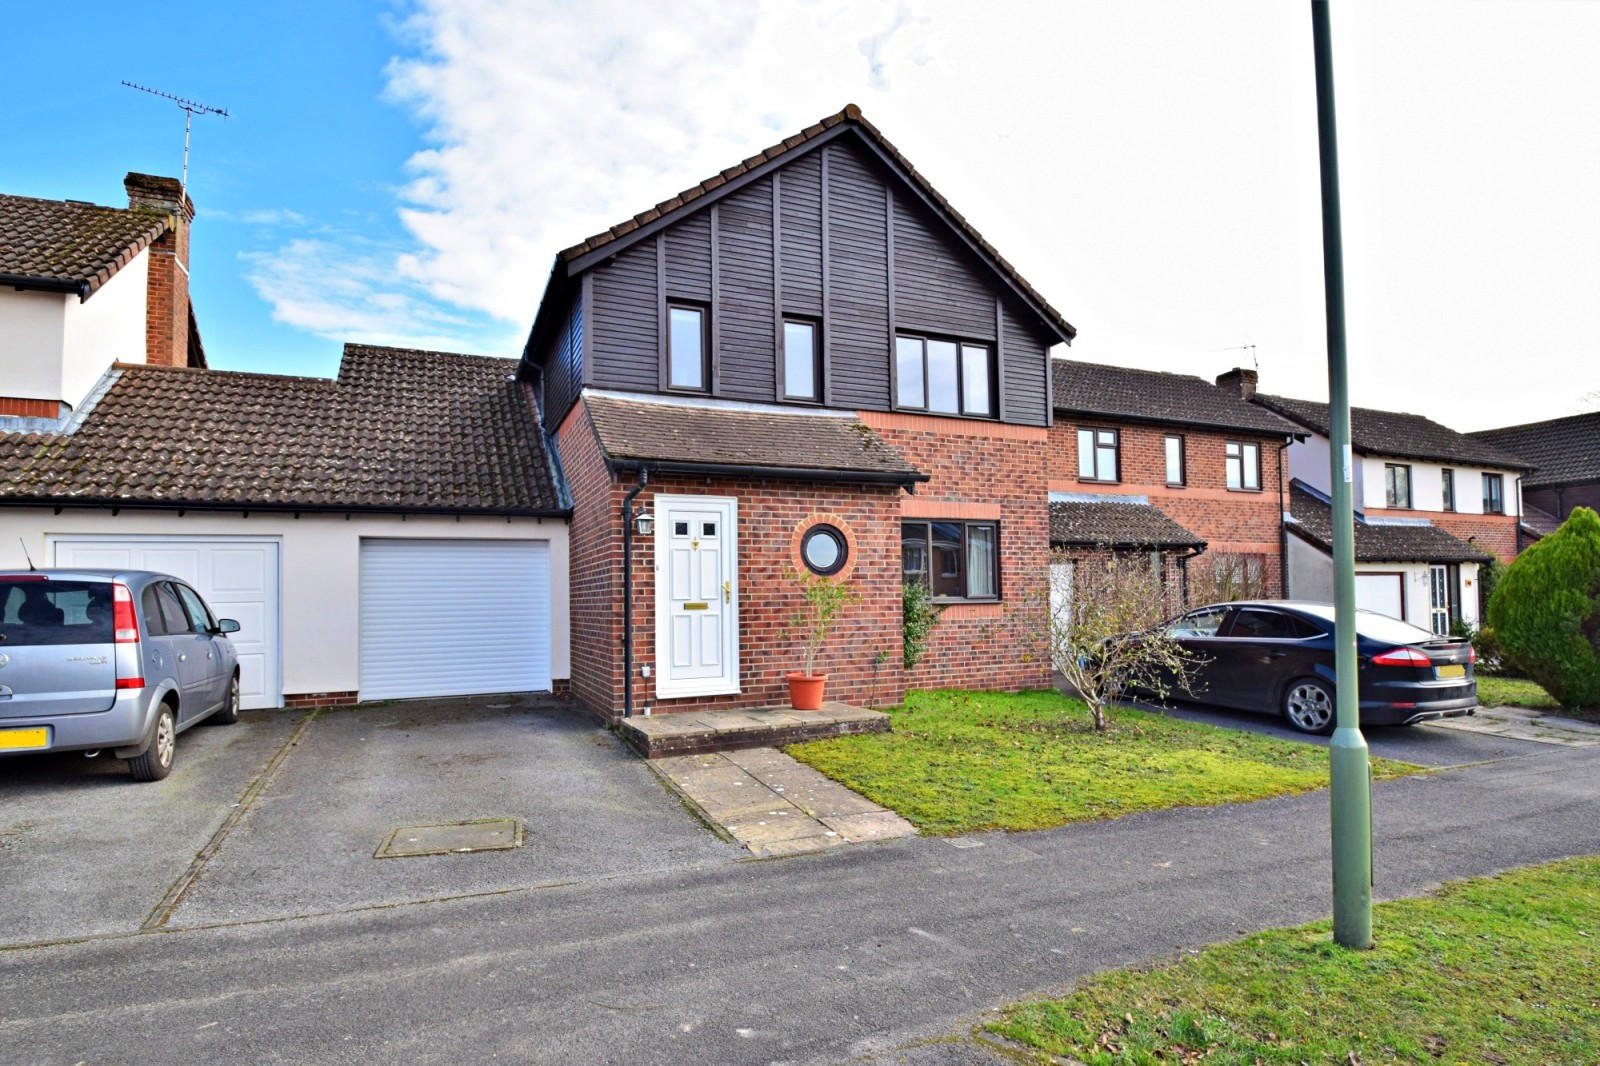 42 Campion Way, Kings Worthy, Winchester SO23 7QP